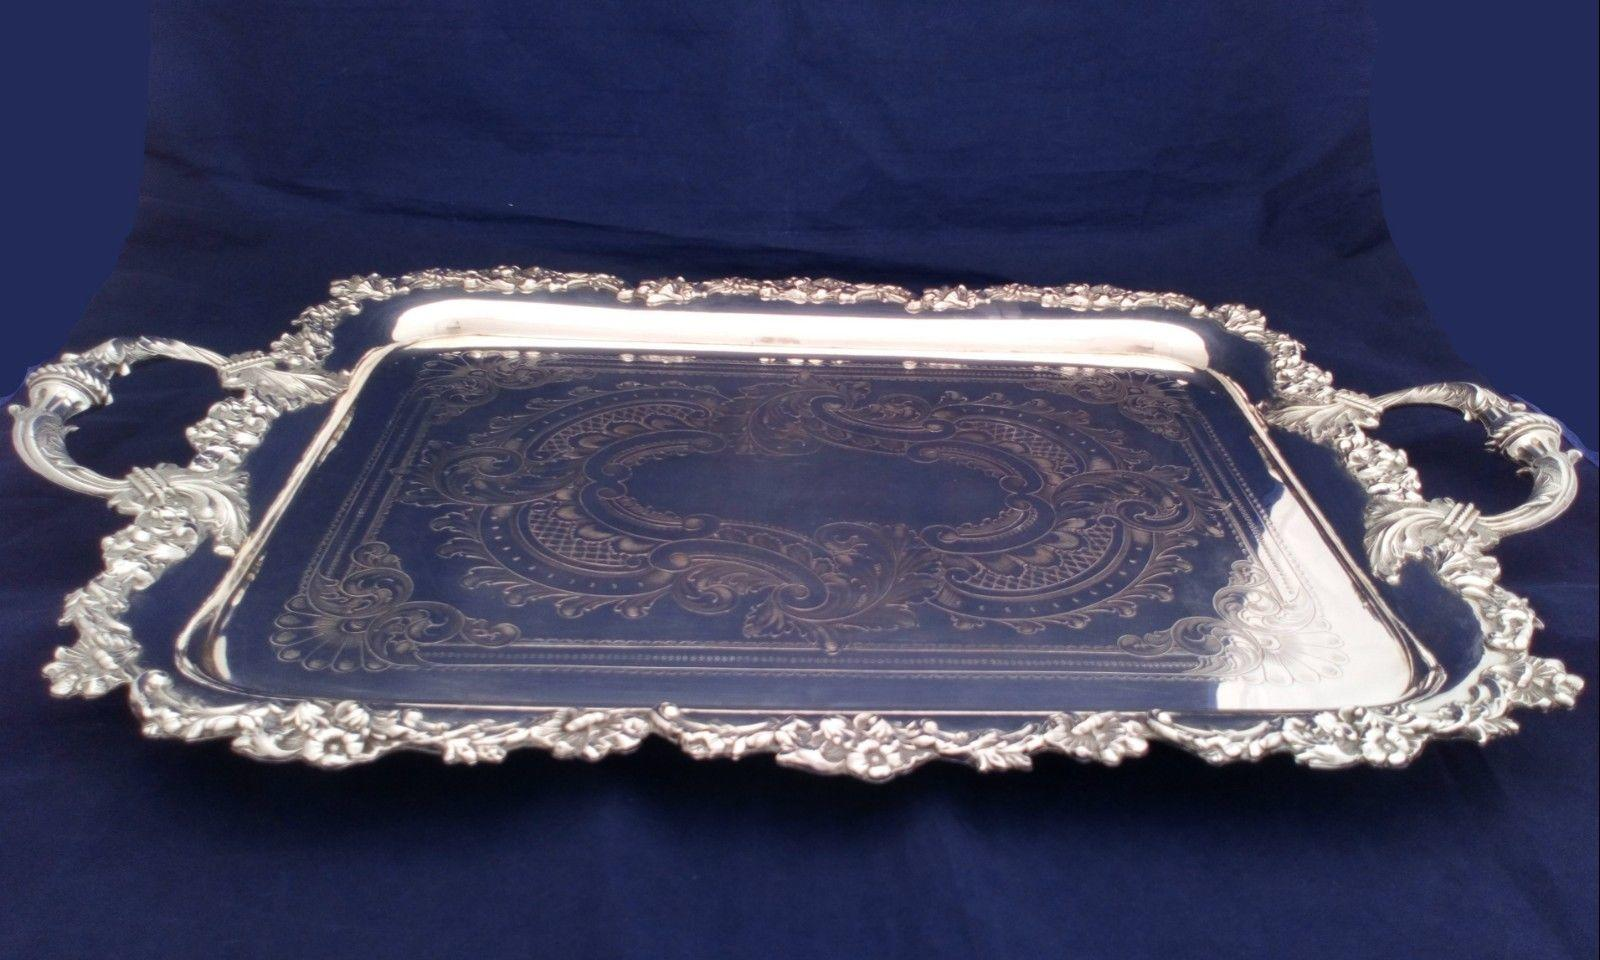 Antique Tea Service Aesthetic Movement Silver Plated Butler's Tray Atkin Br 1890